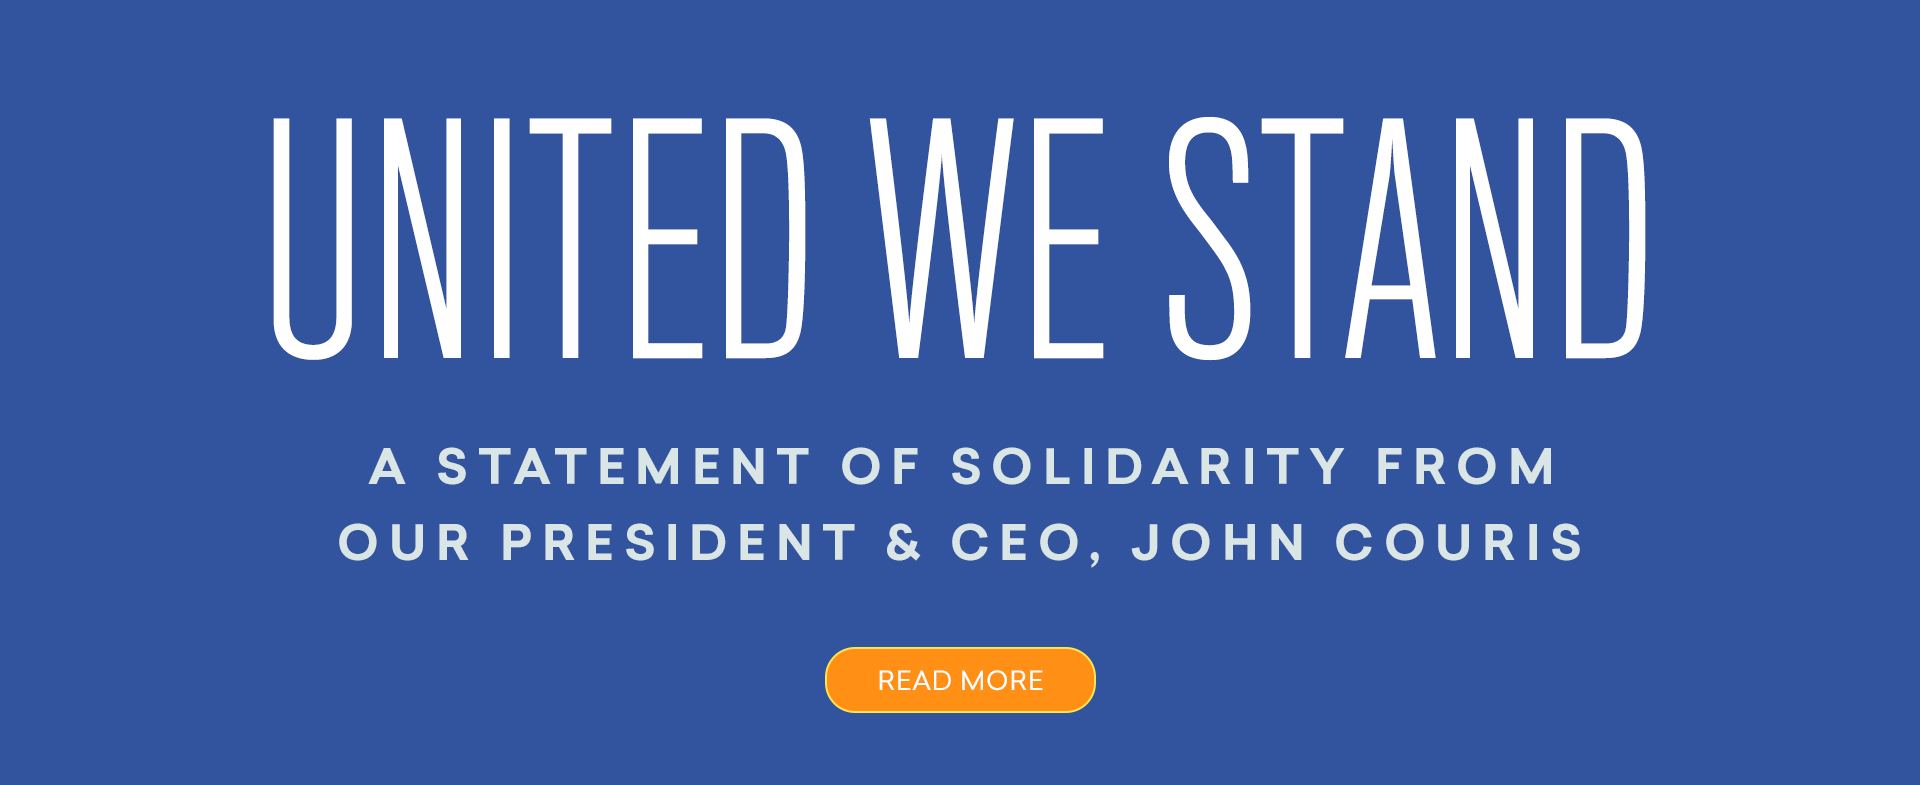 United We Stand - A statement of solidarity from our president and CEO, John Couris, Read more